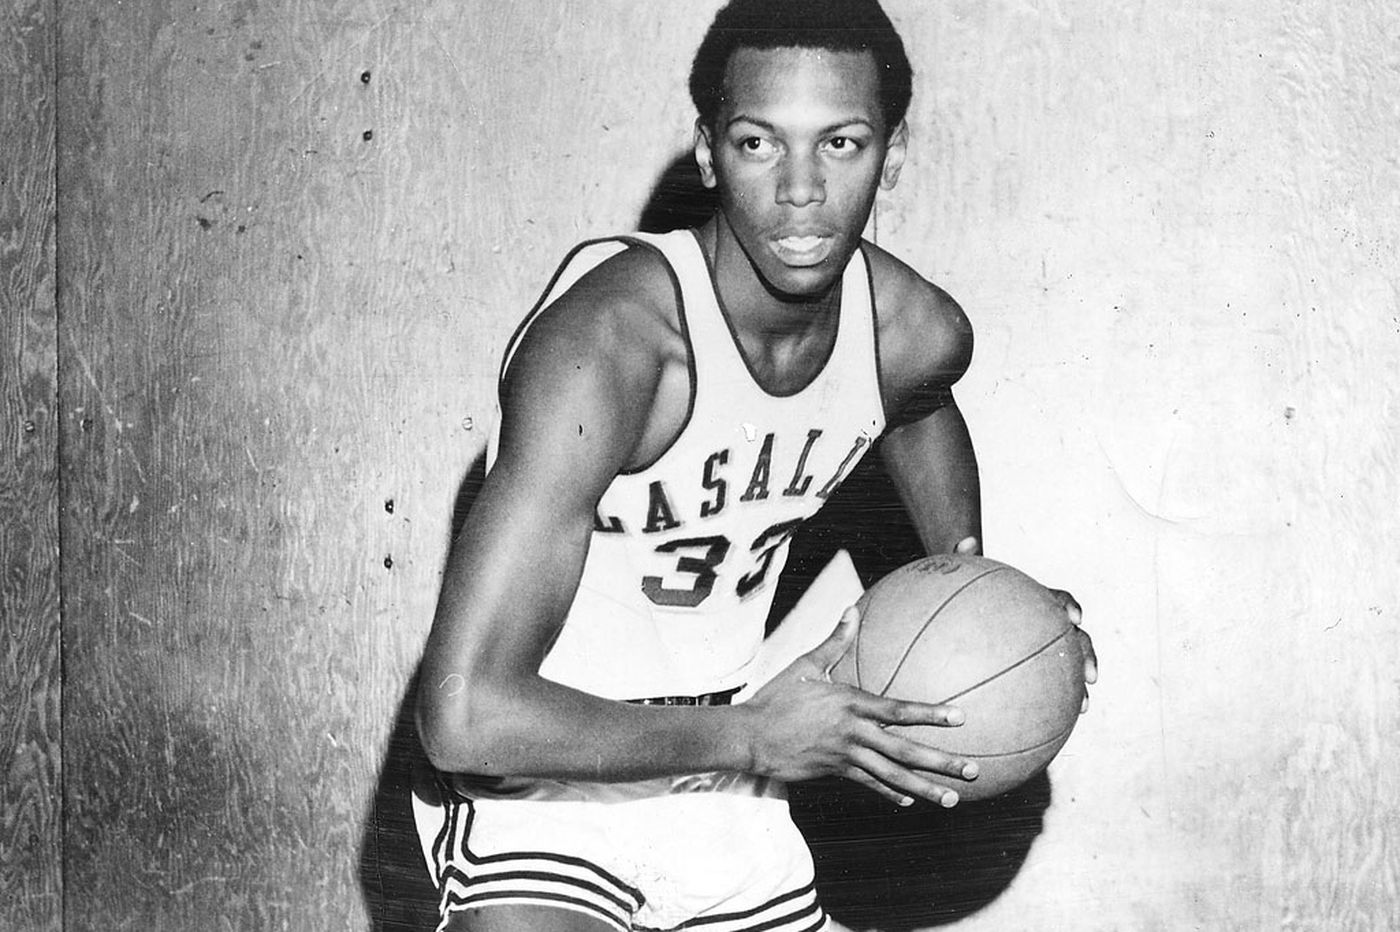 La Salle to induct legendary 1968-69 basketball team into Hall of Athletes